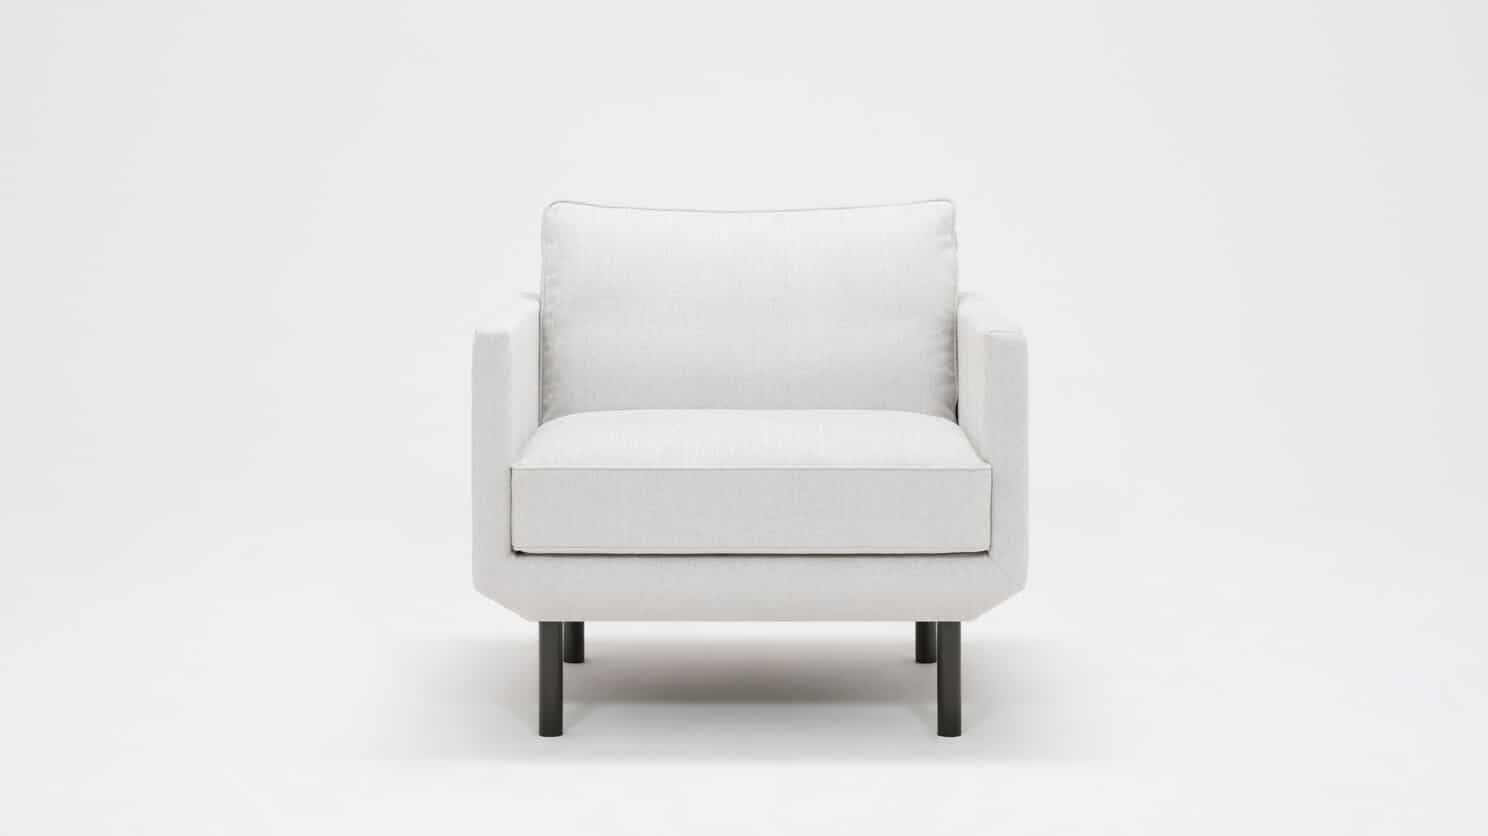 30154 95 1 chairs plateau club chair feather coda marble front 02